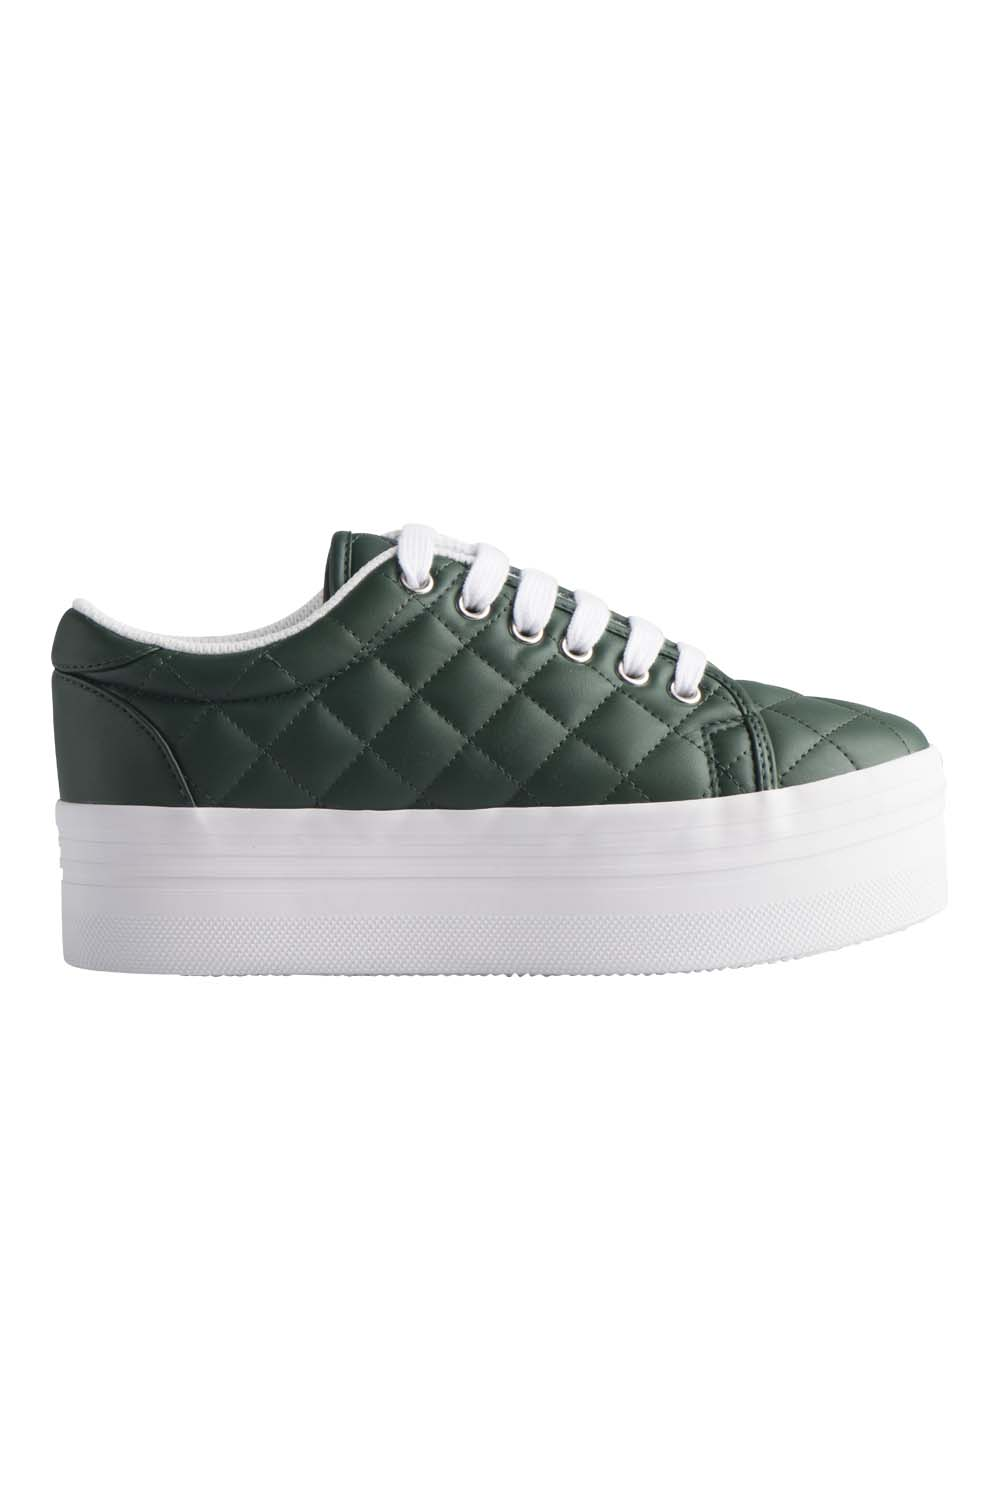 JEFFREY CAMPBELL SNEAKERS - ZOMG DK GREEN QUILTED.jpg